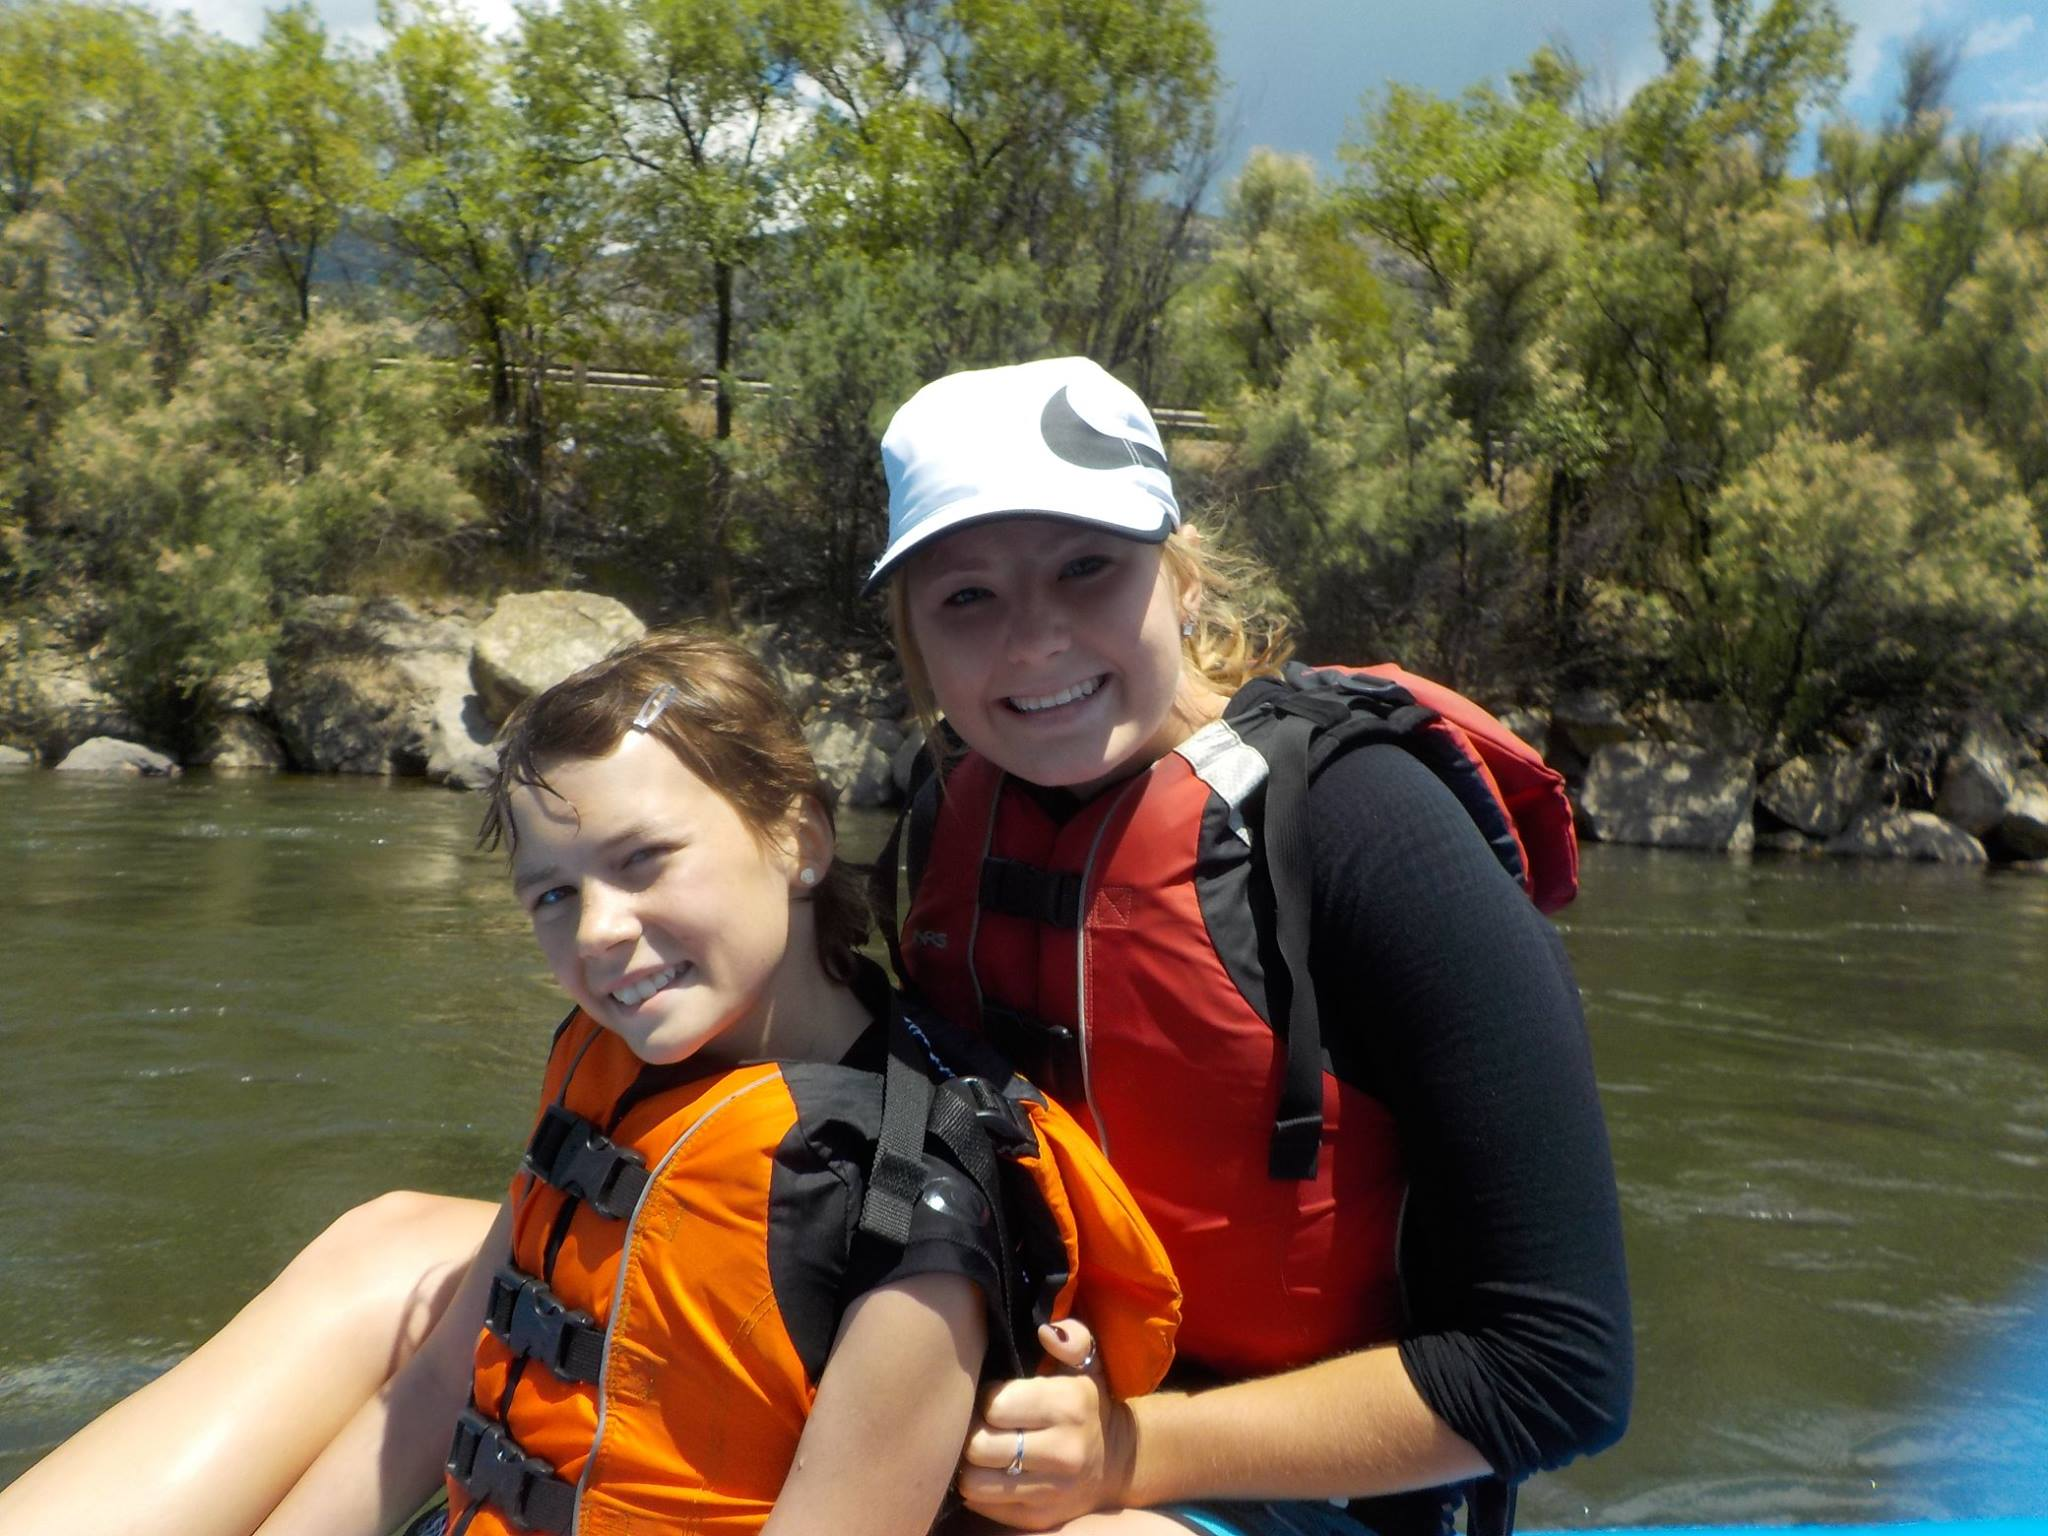 Bennett's sister Emily joined us this past summer as a volunteer member of our medical team at our Aspen Summer Adventure Program!